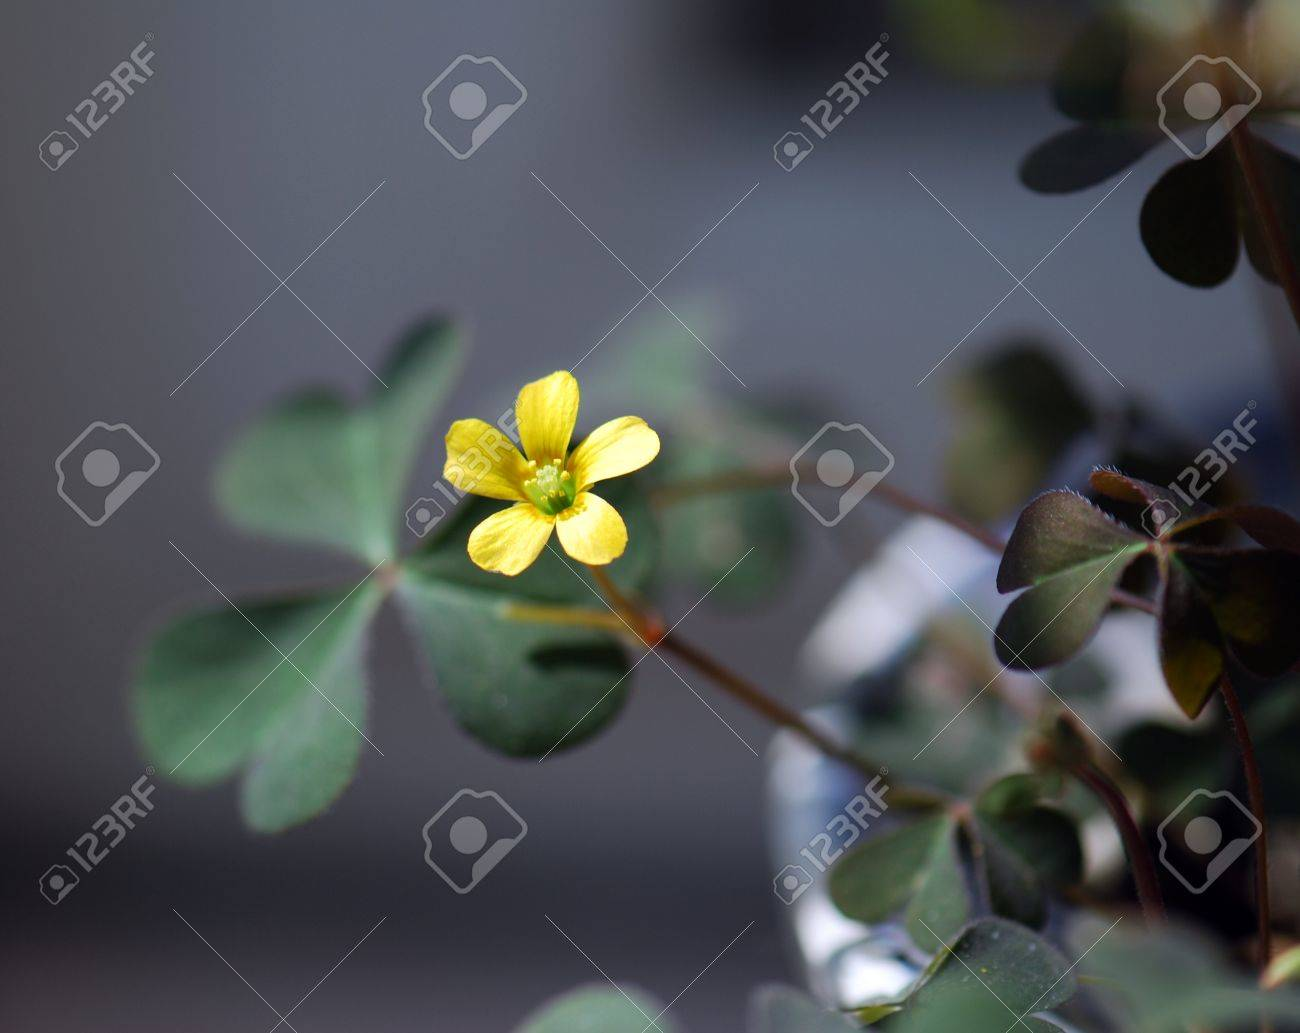 Yellow clover flowers stock photo picture and royalty free image stock photo yellow clover flowers mightylinksfo